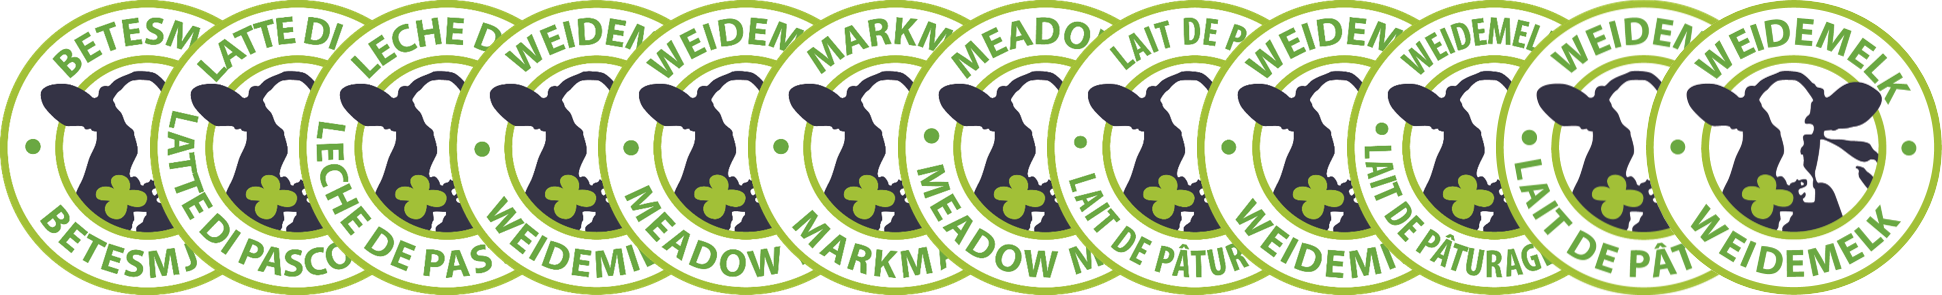 Meadow milk language varieties